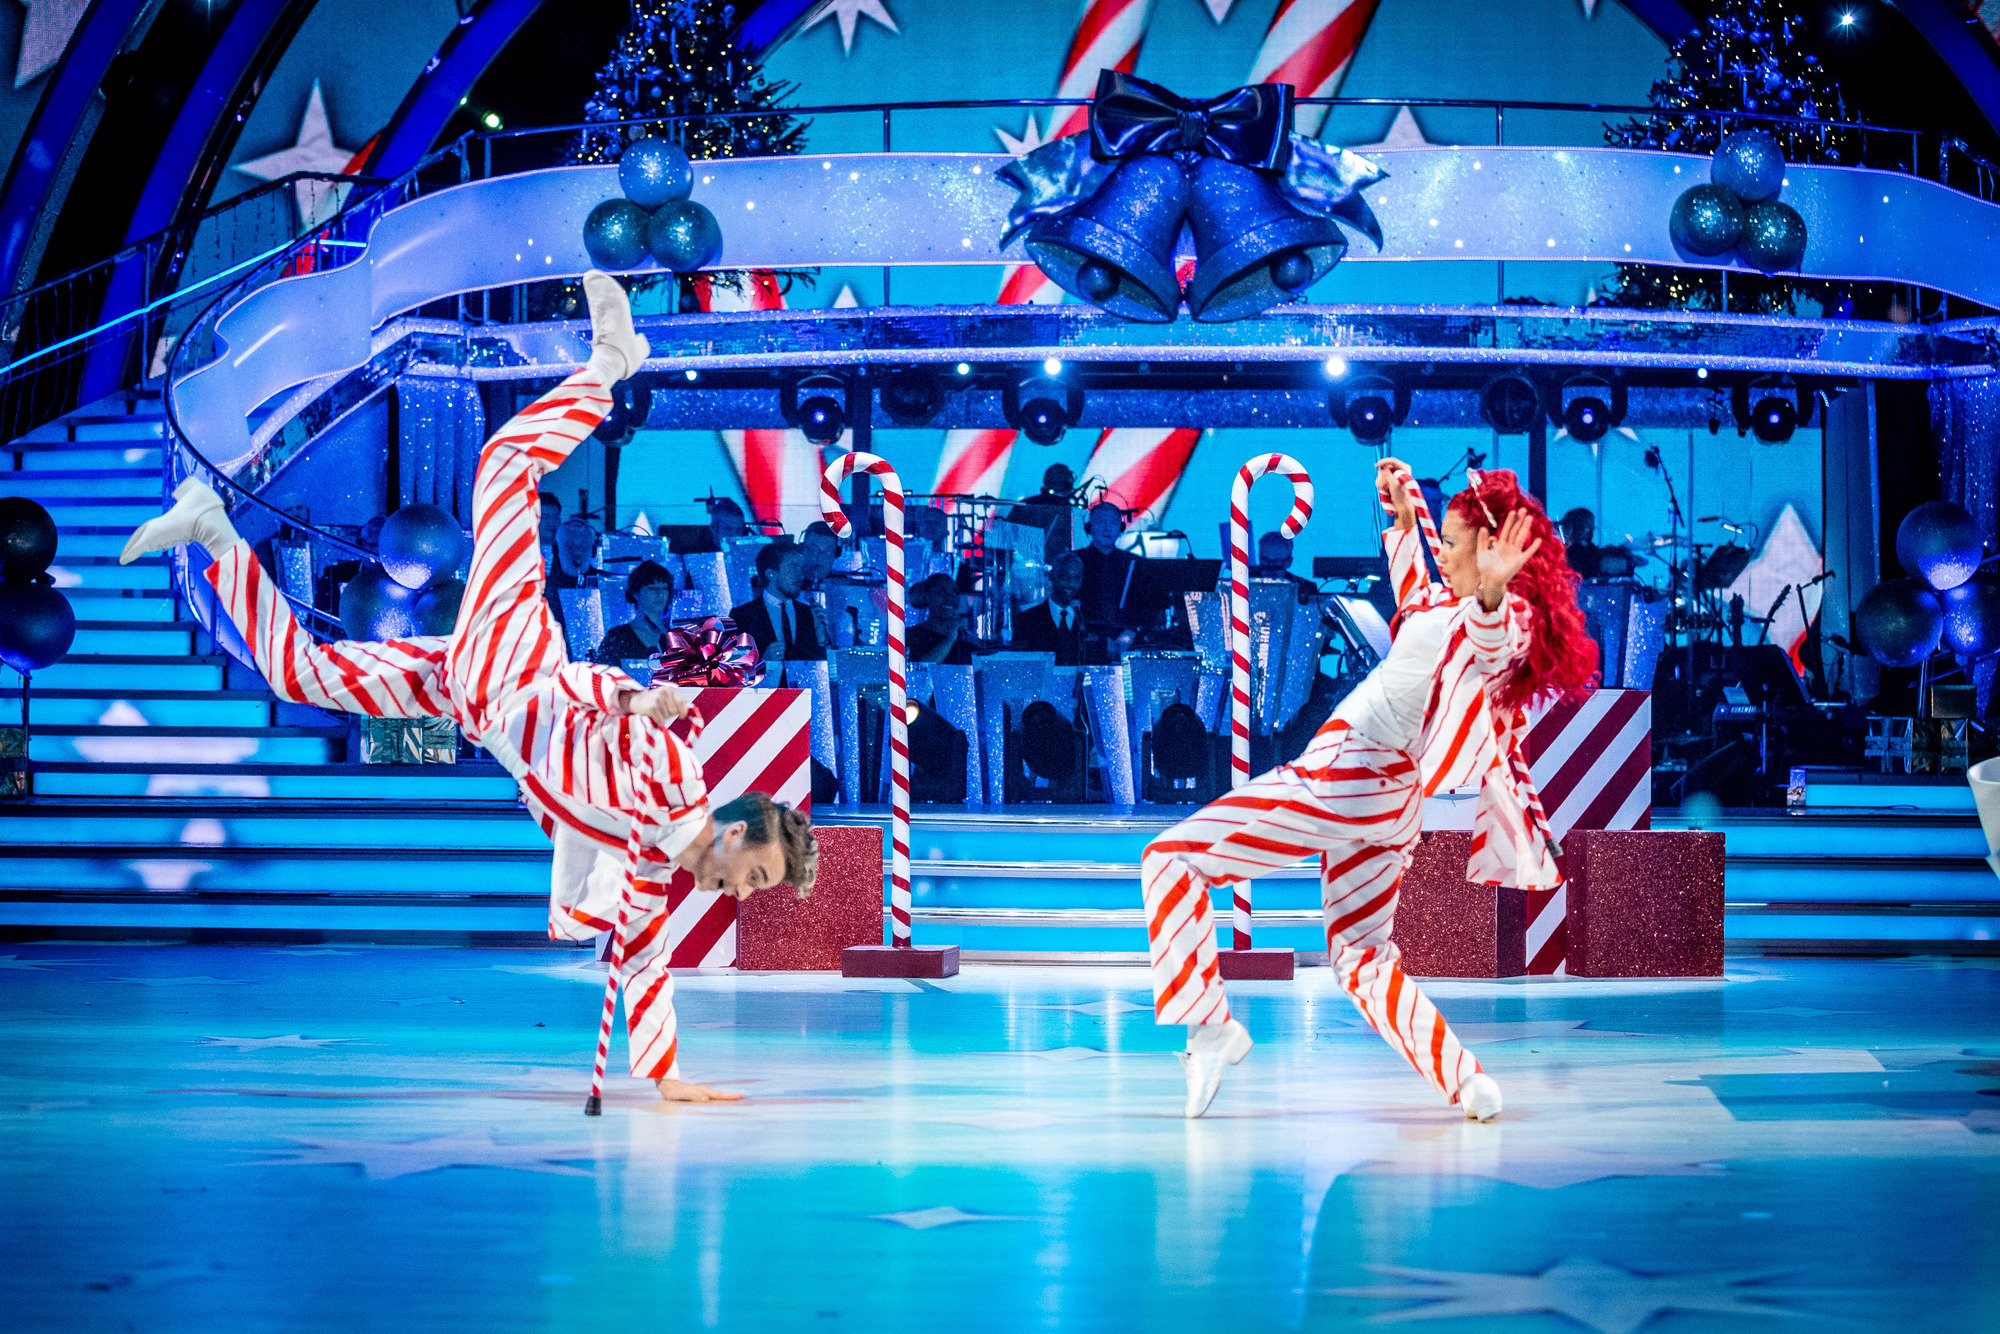 Joe Sugg and Dianne Buswell taking part in the Strictly Christmas Special 2019 (Credit: BBC One)